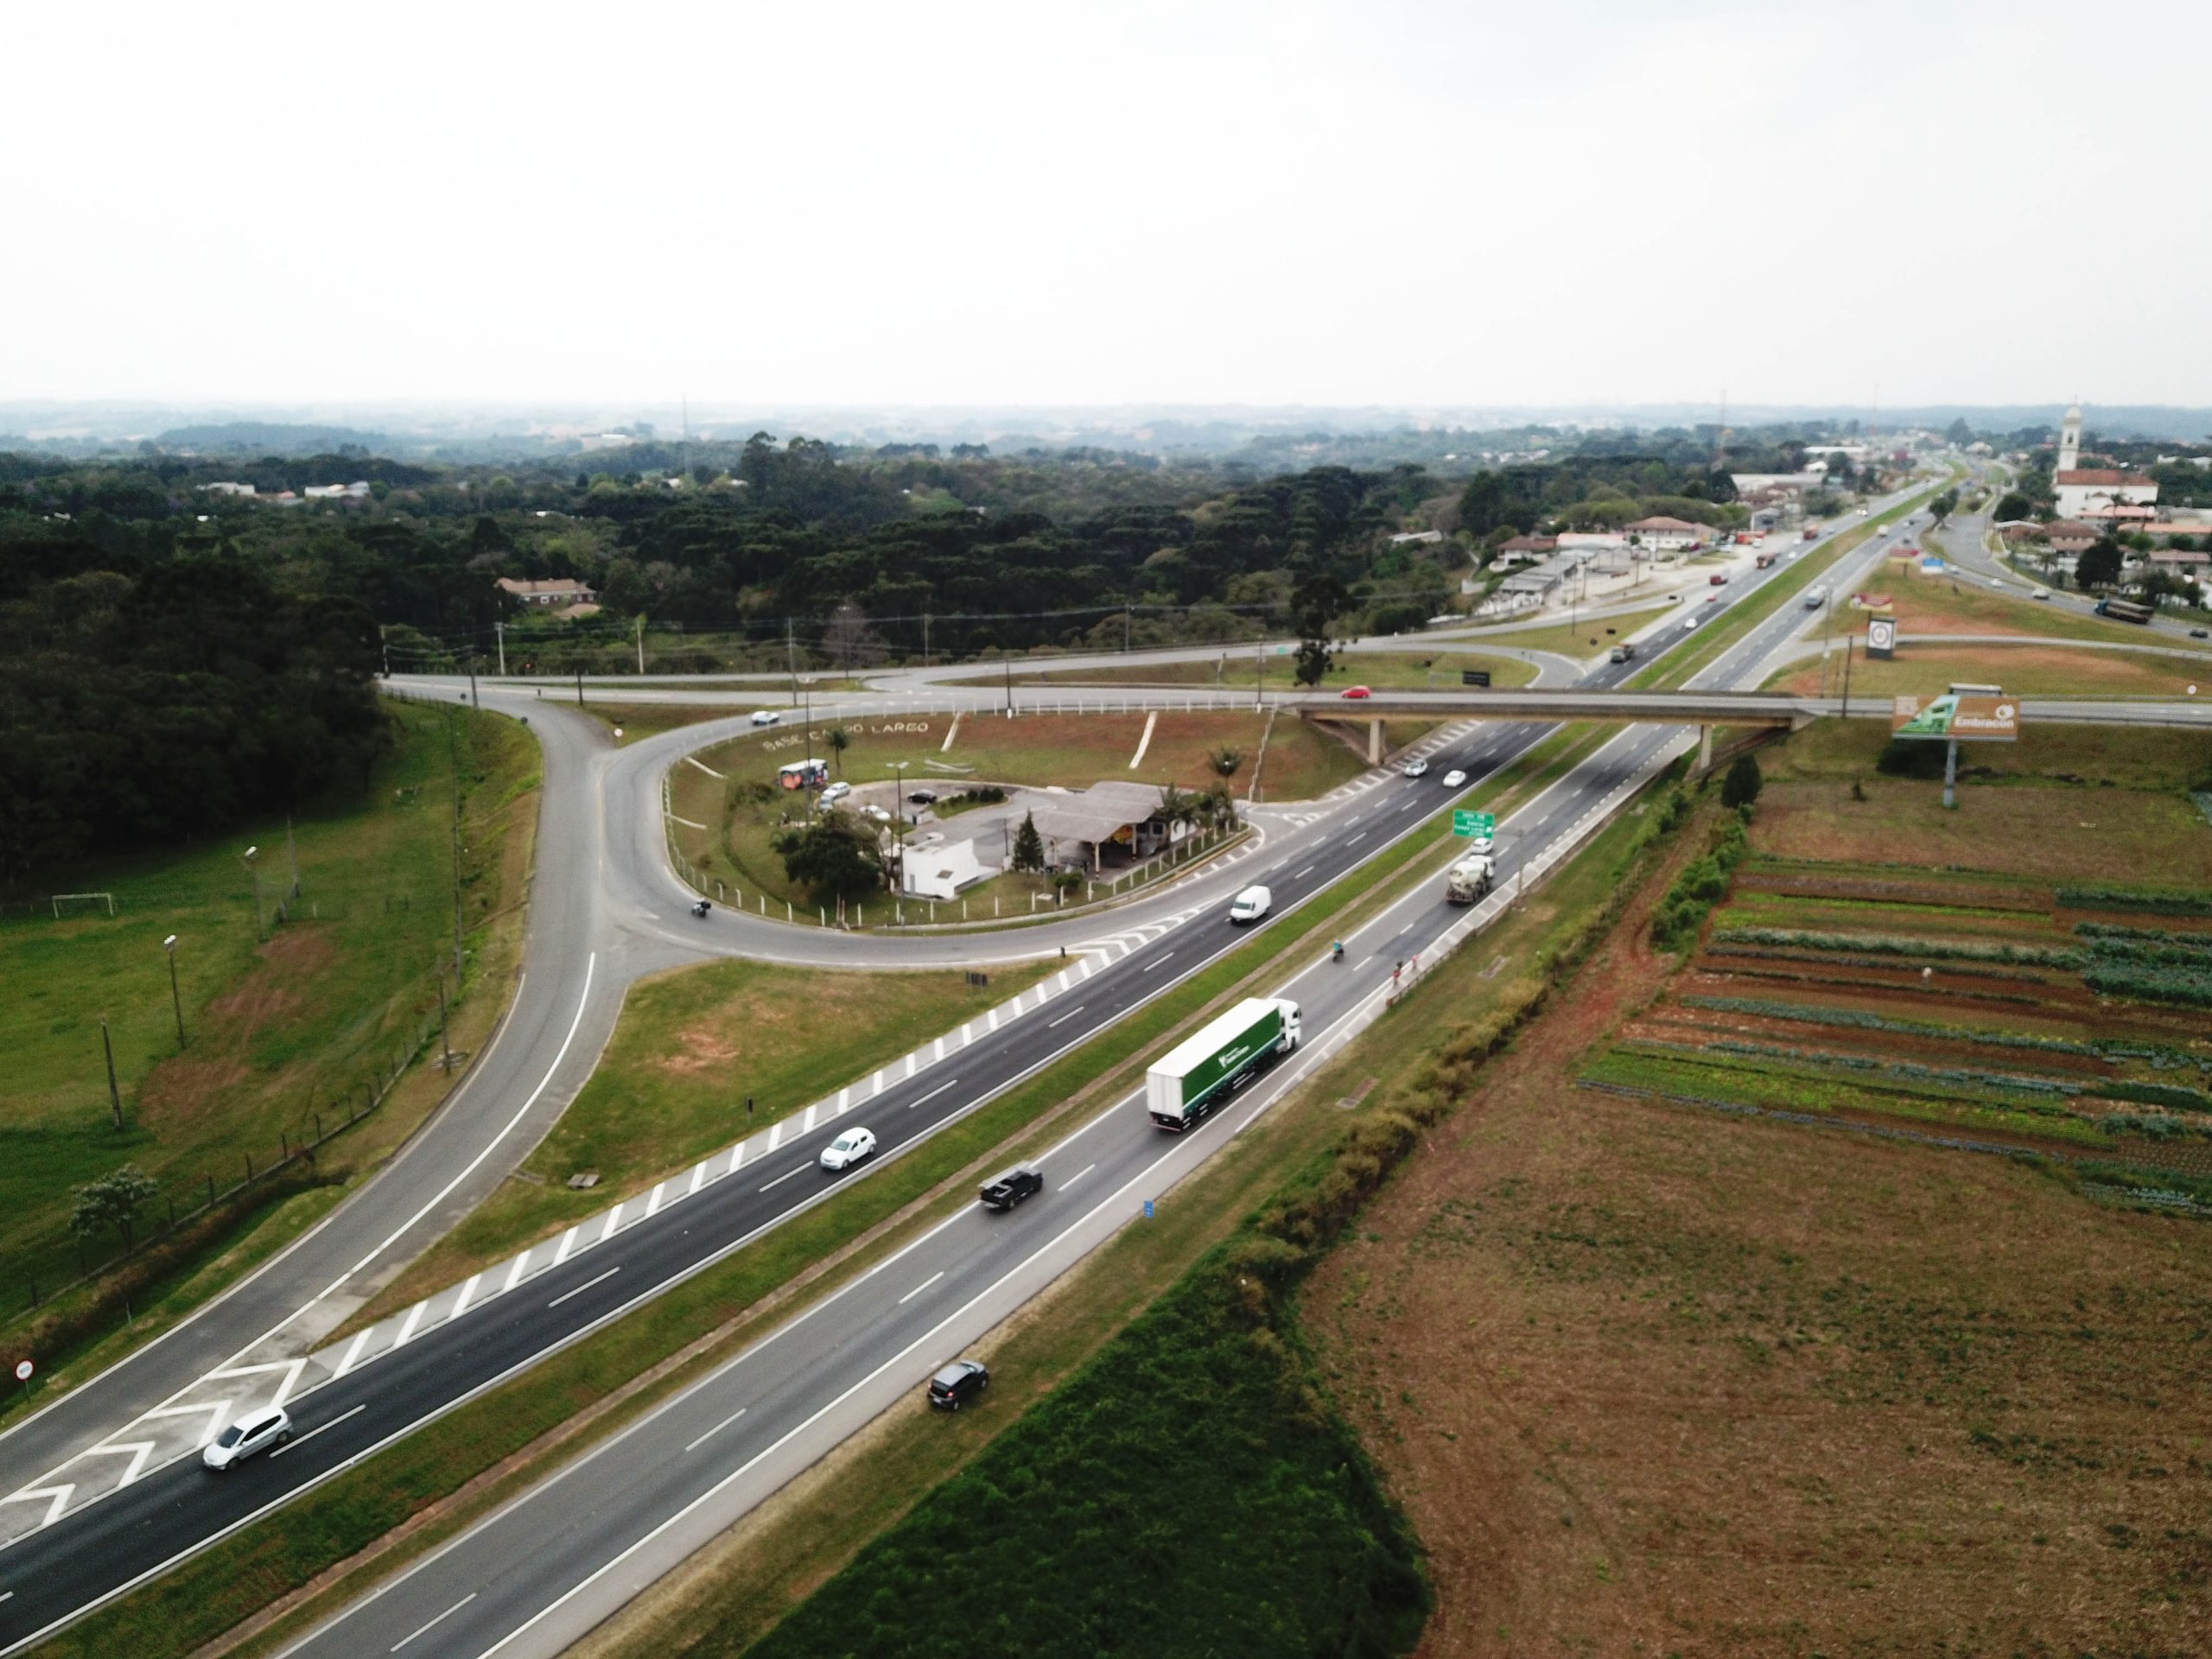 Imtraff creates Urban mobility plans in Brazilian municipalities.